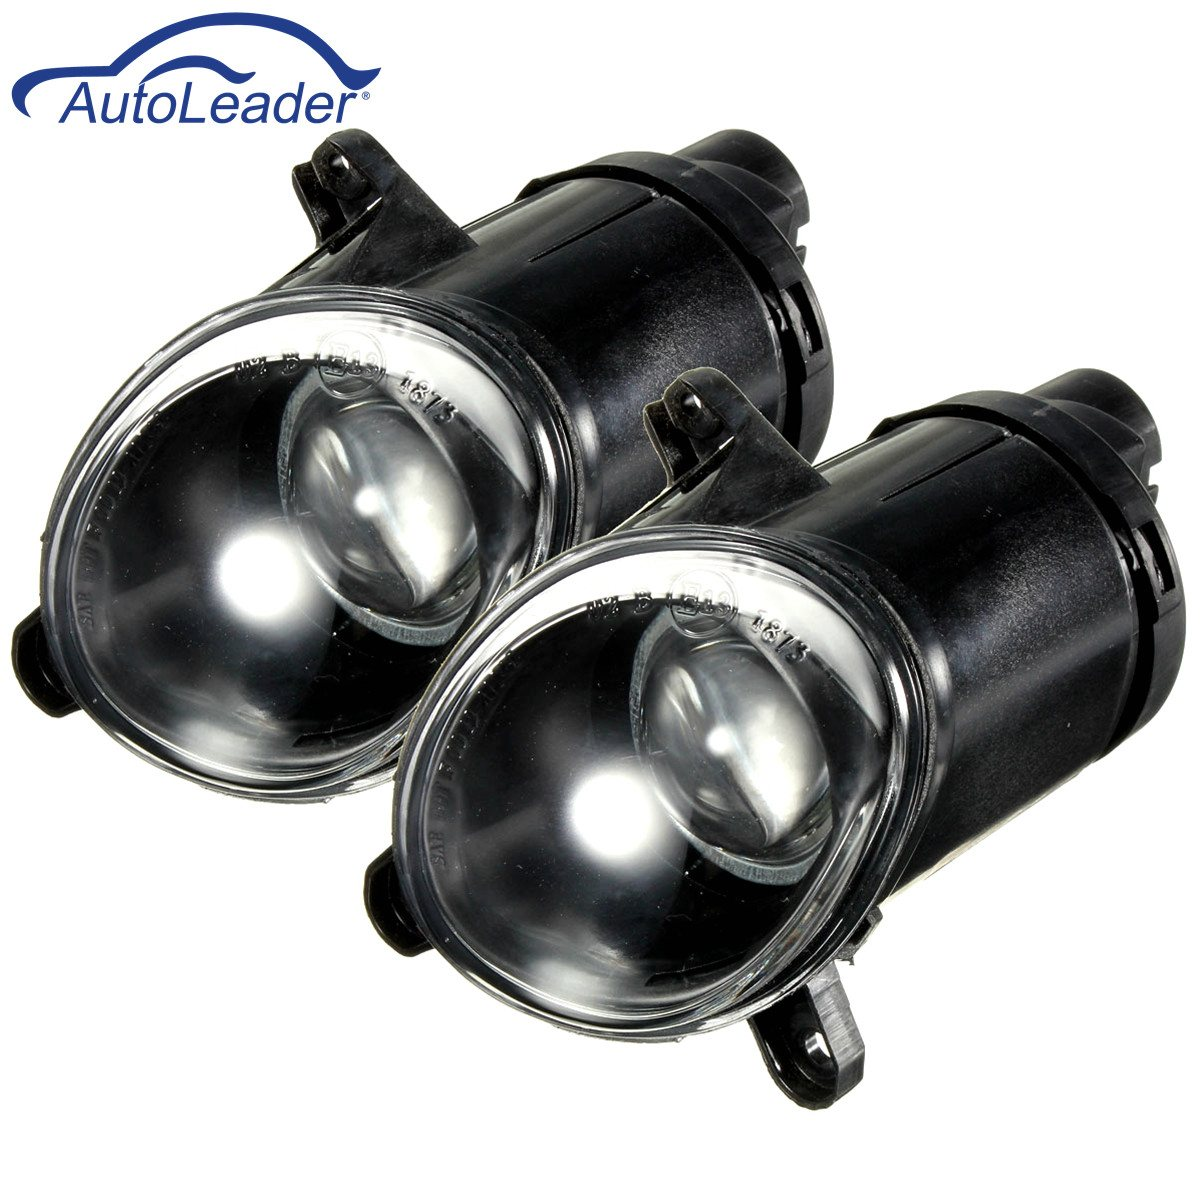 1 Pair Car Front Bumper Fog Light Driving Lamp For VW Passat 3BG B5 2000 2001-2005 H3 Bulb front bumper fog lamp grille led convex lens fog light angel eyes for vw polo 2001 2002 2003 2004 2005 drl car accessory p364